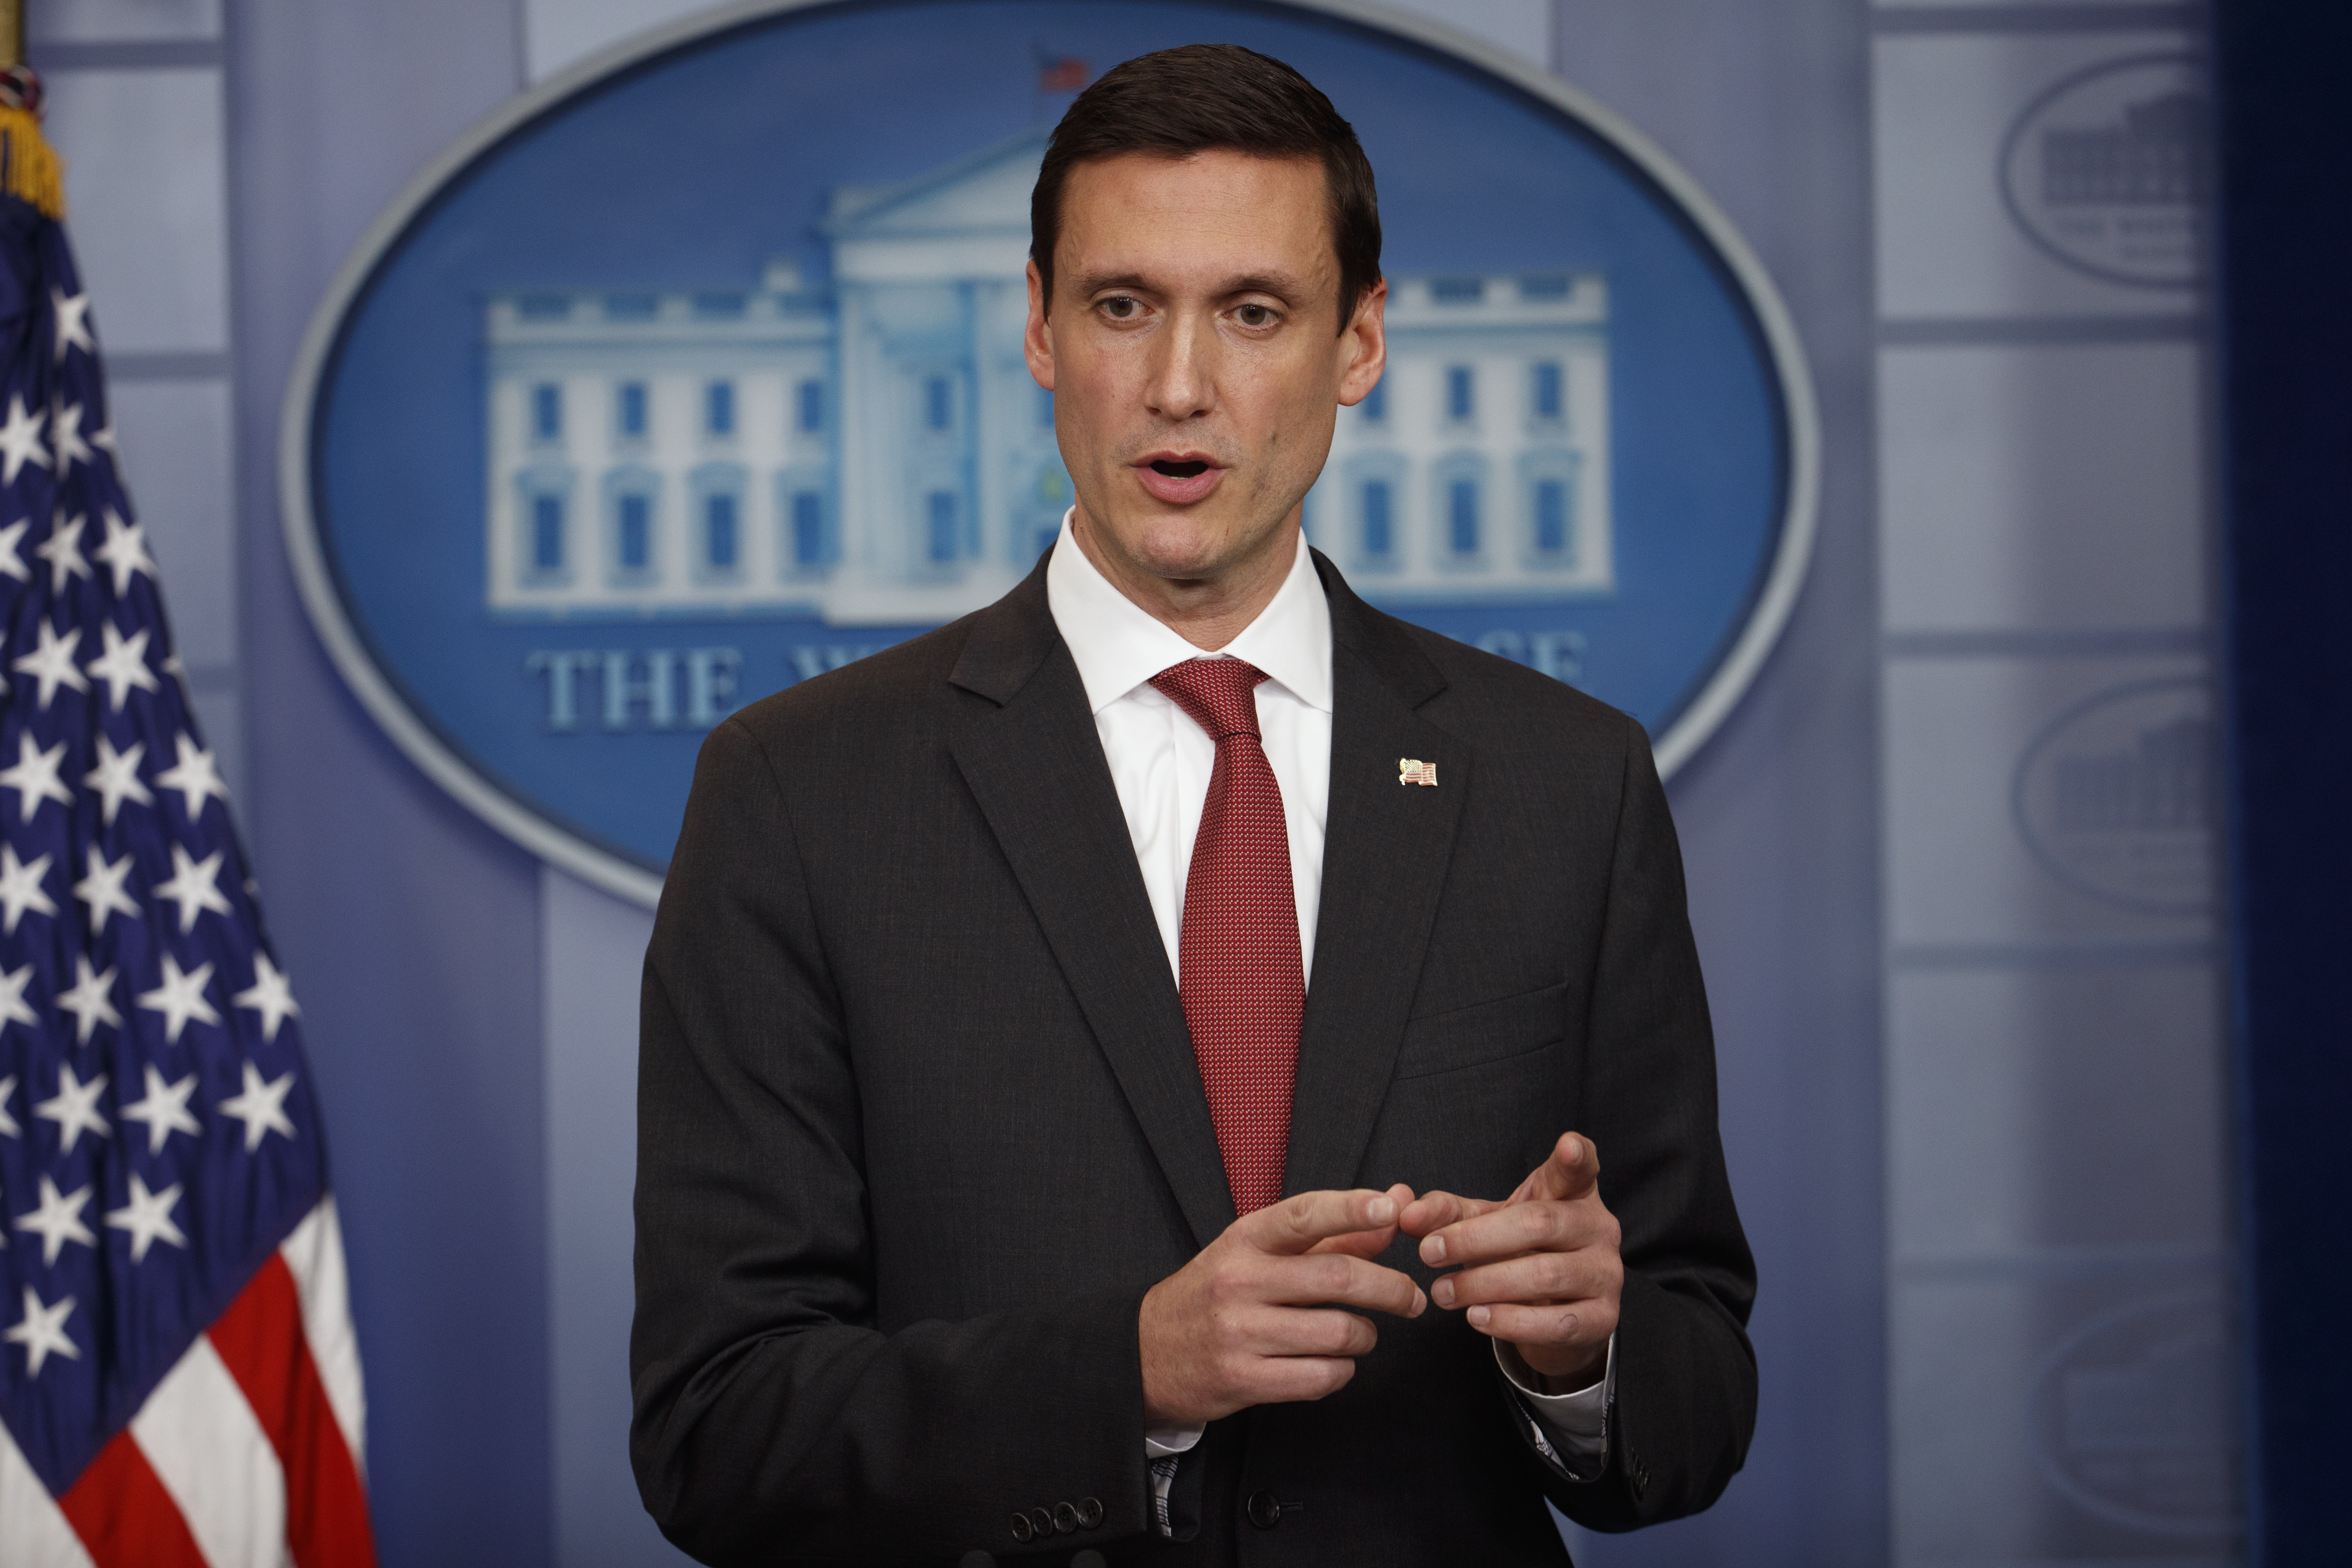 Homeland security adviser Tom Bossert speaks during the daily White House press briefing at the White House in Washington, May 11, 2017.